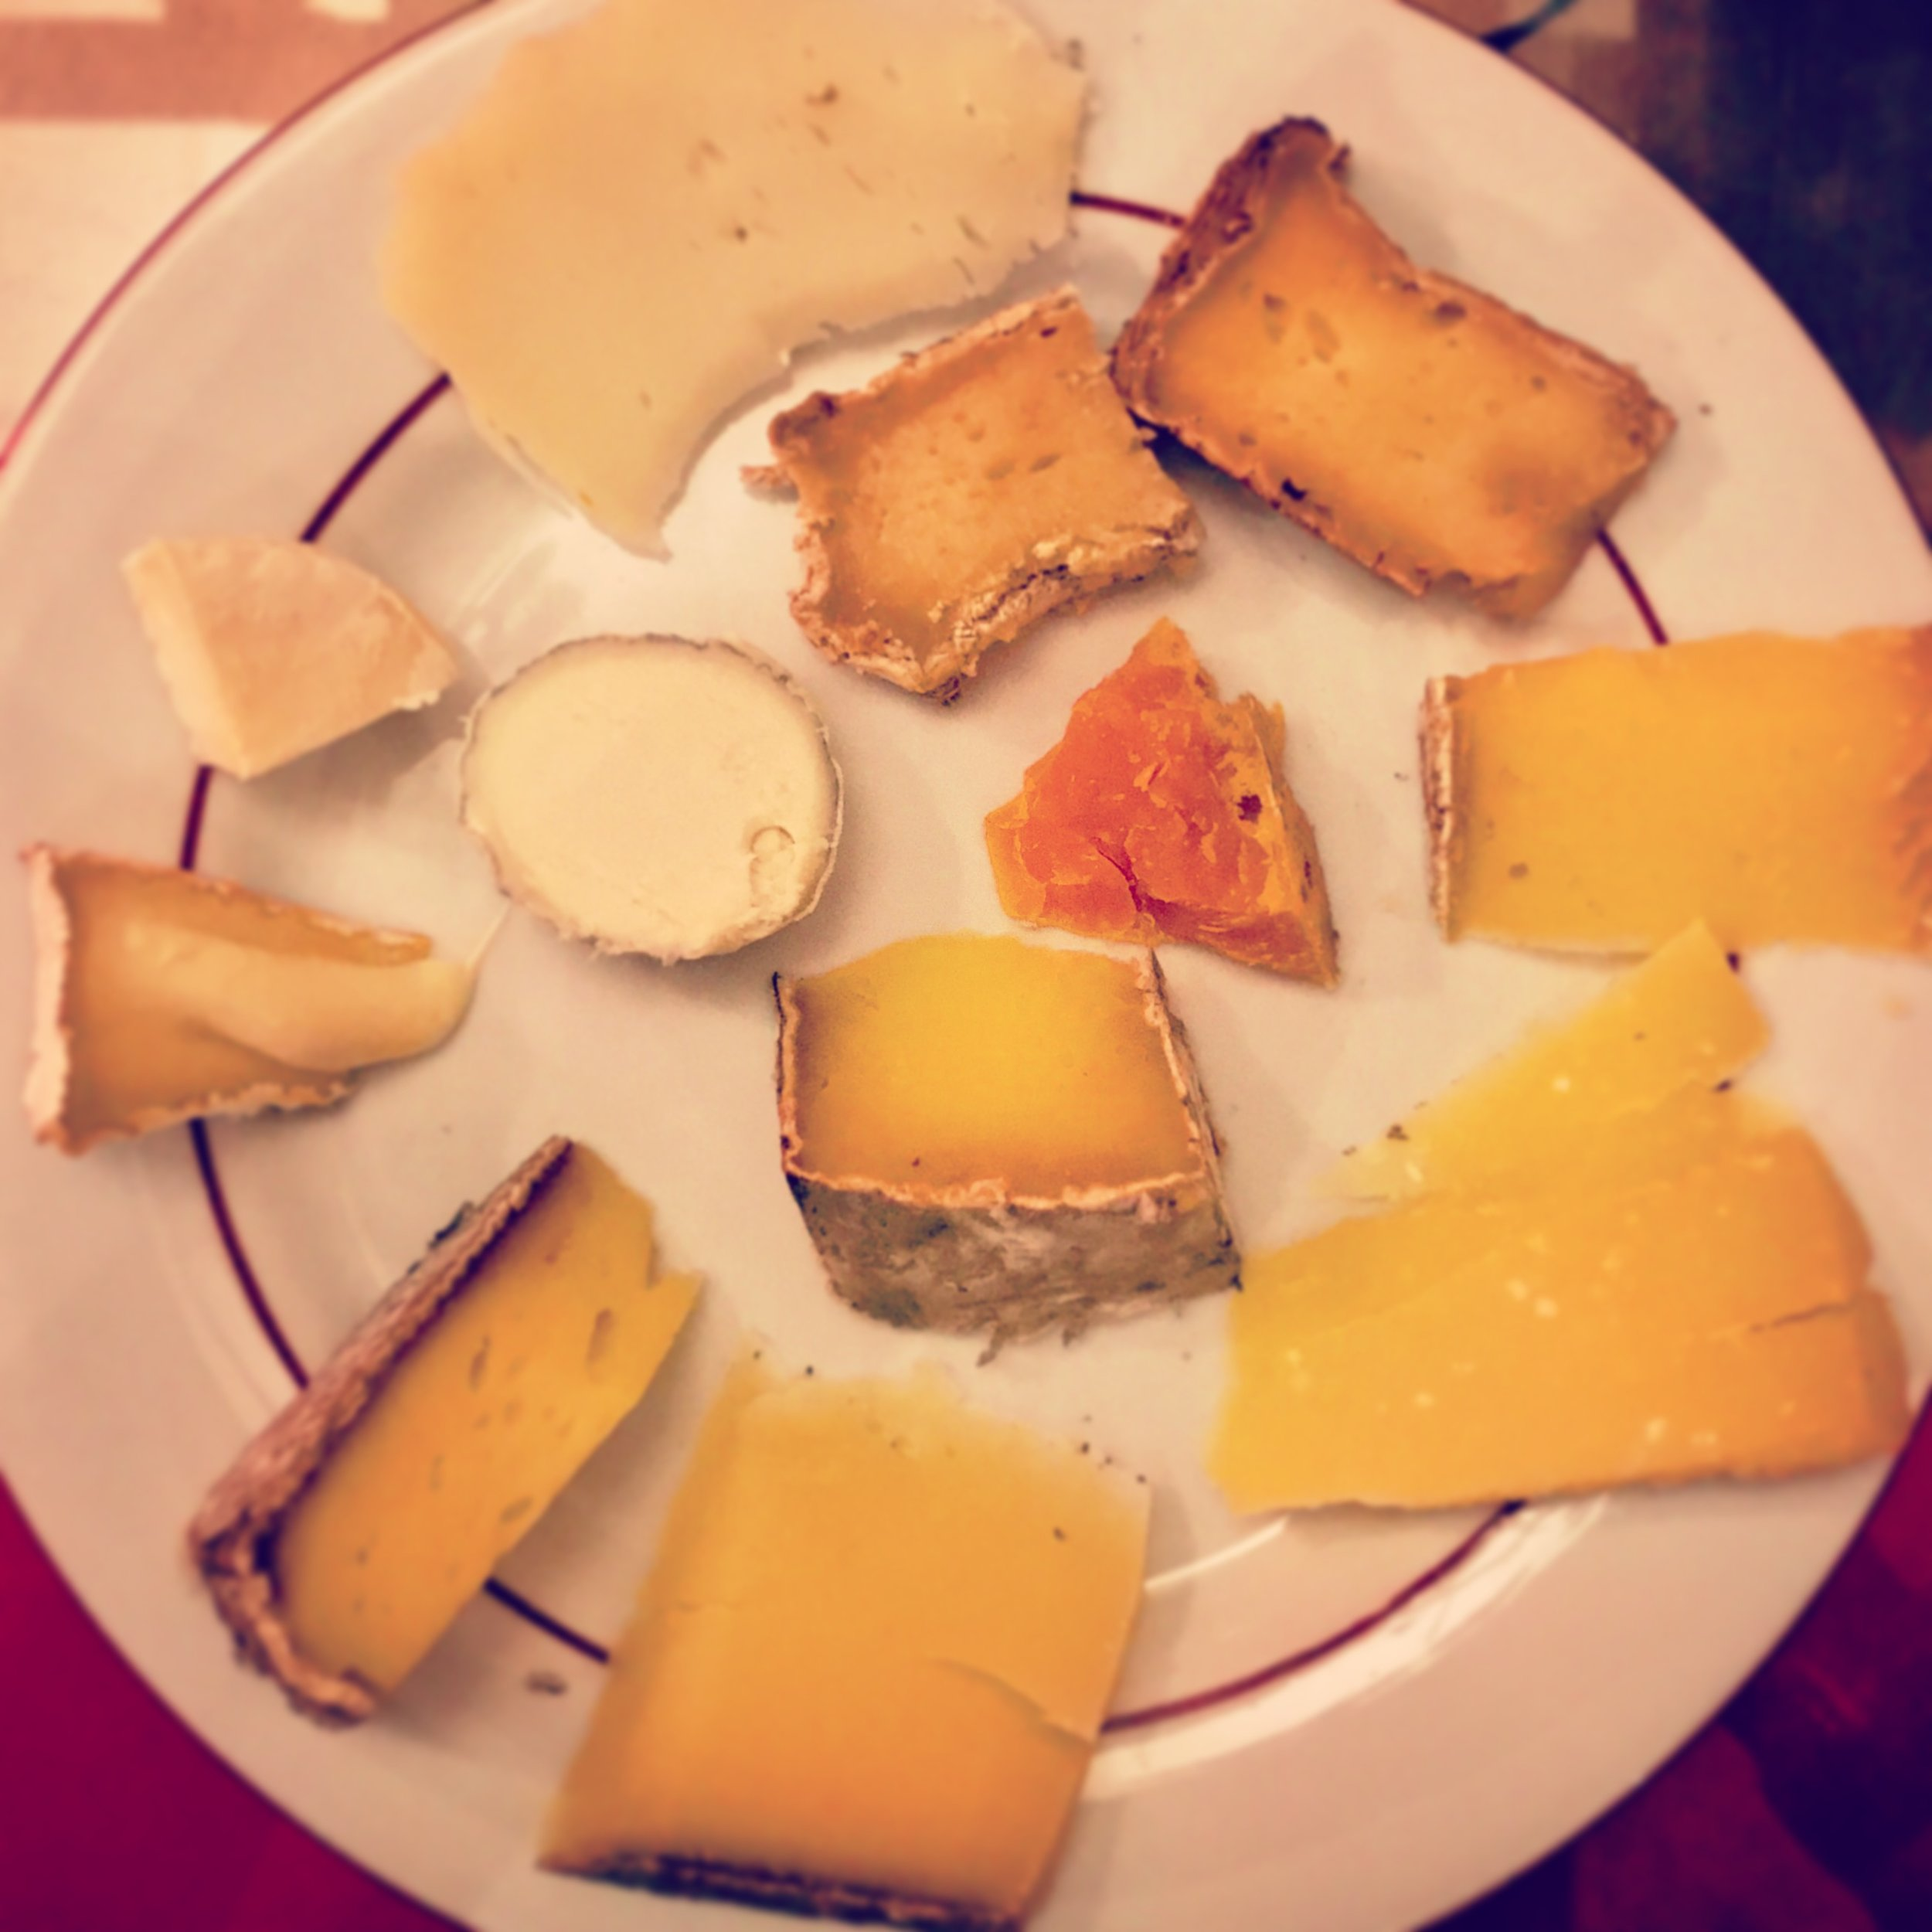 Did I mention that this restaurant served cheese?